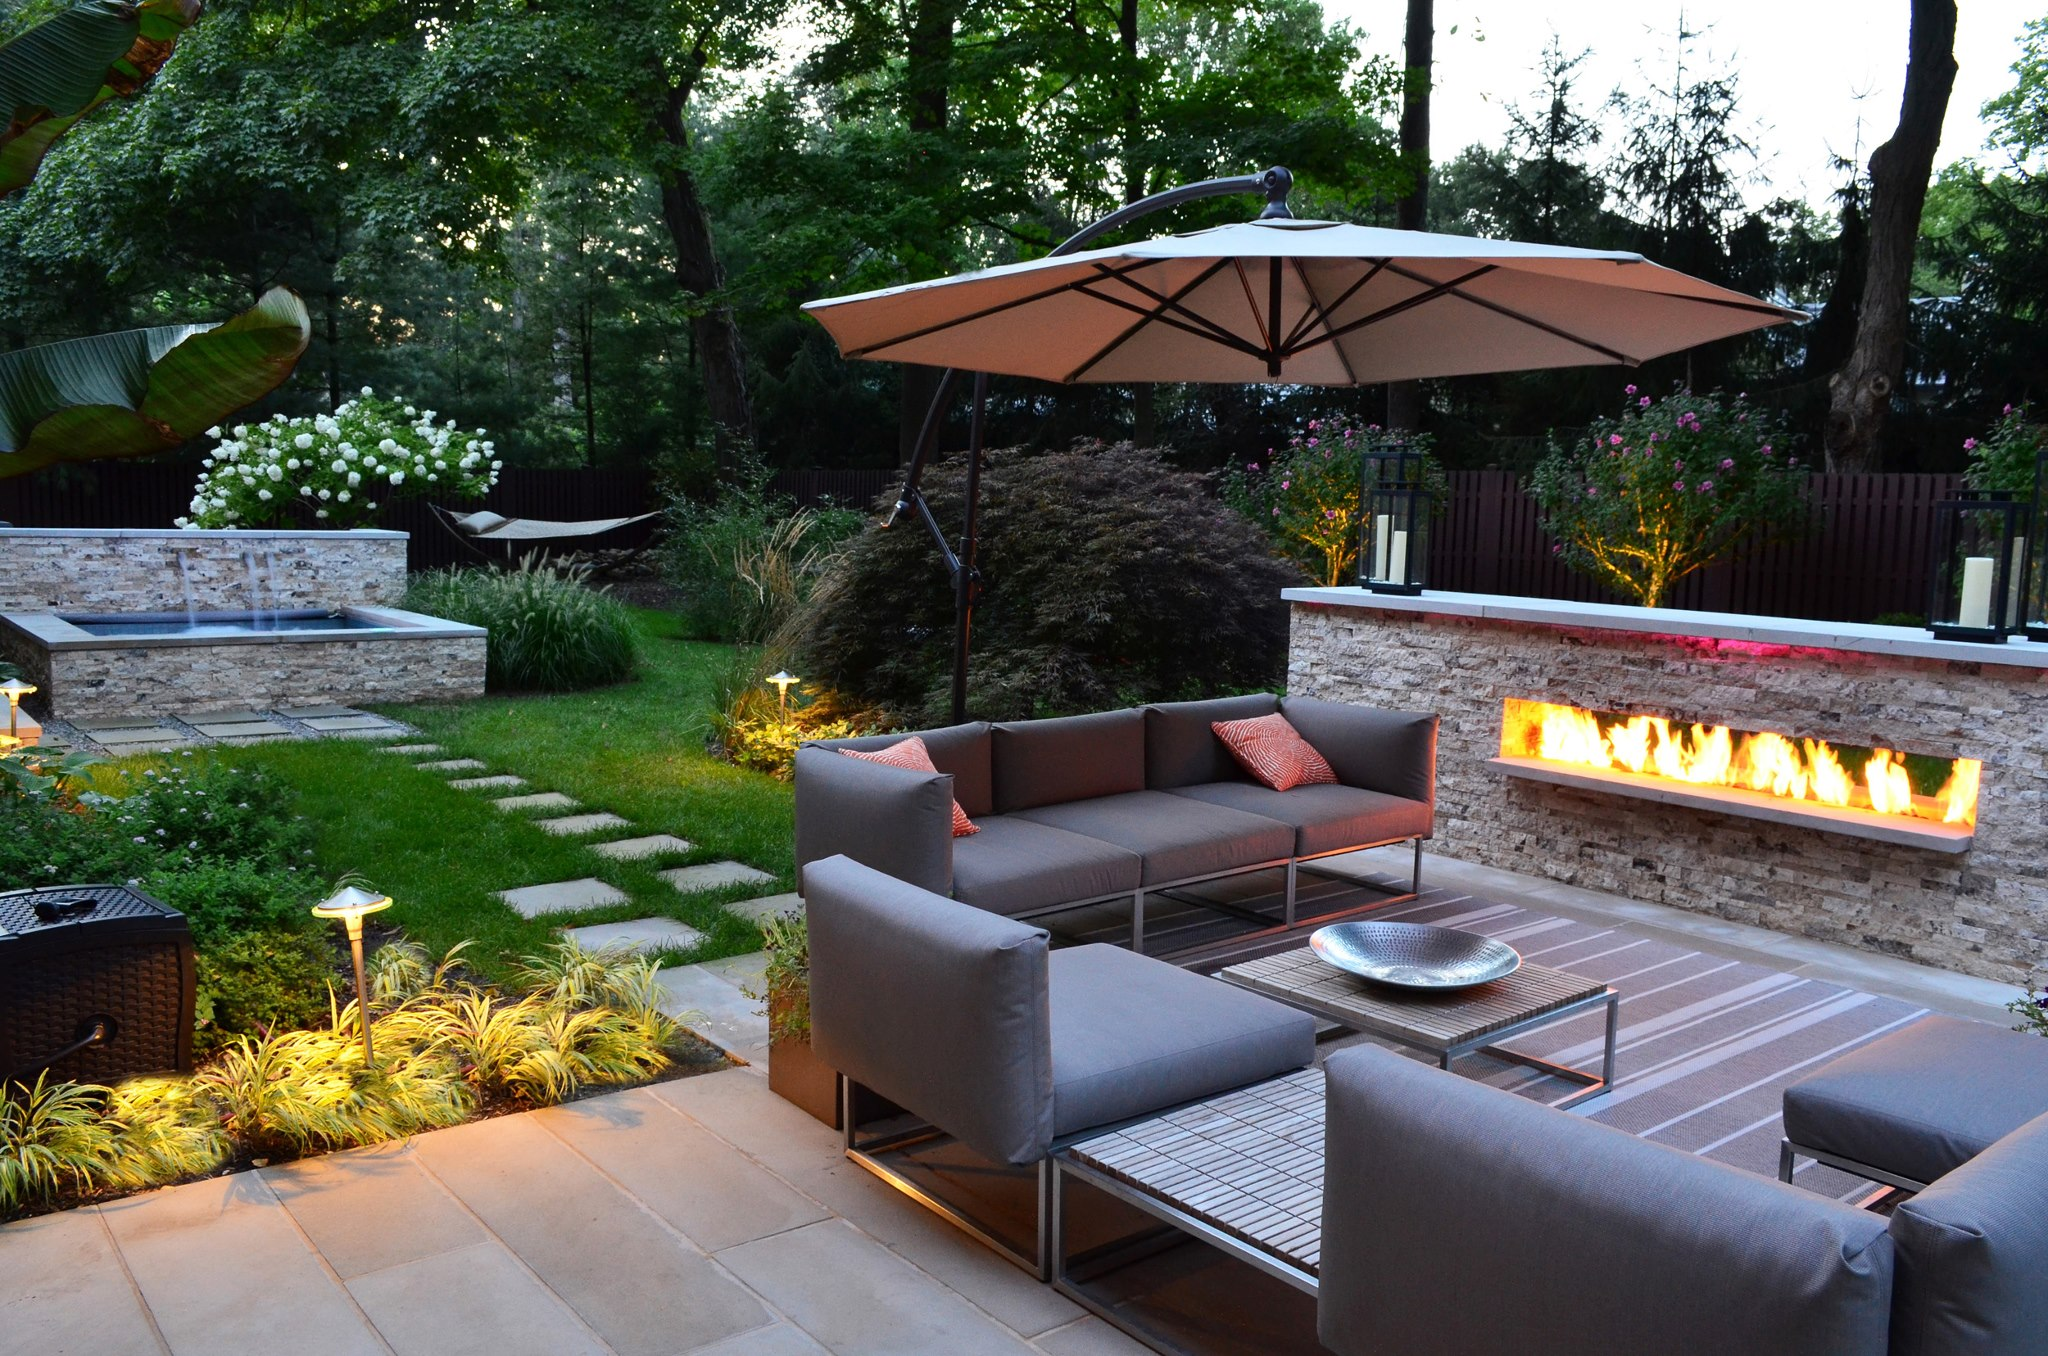 ... pool and spa services came together beautifully for this design